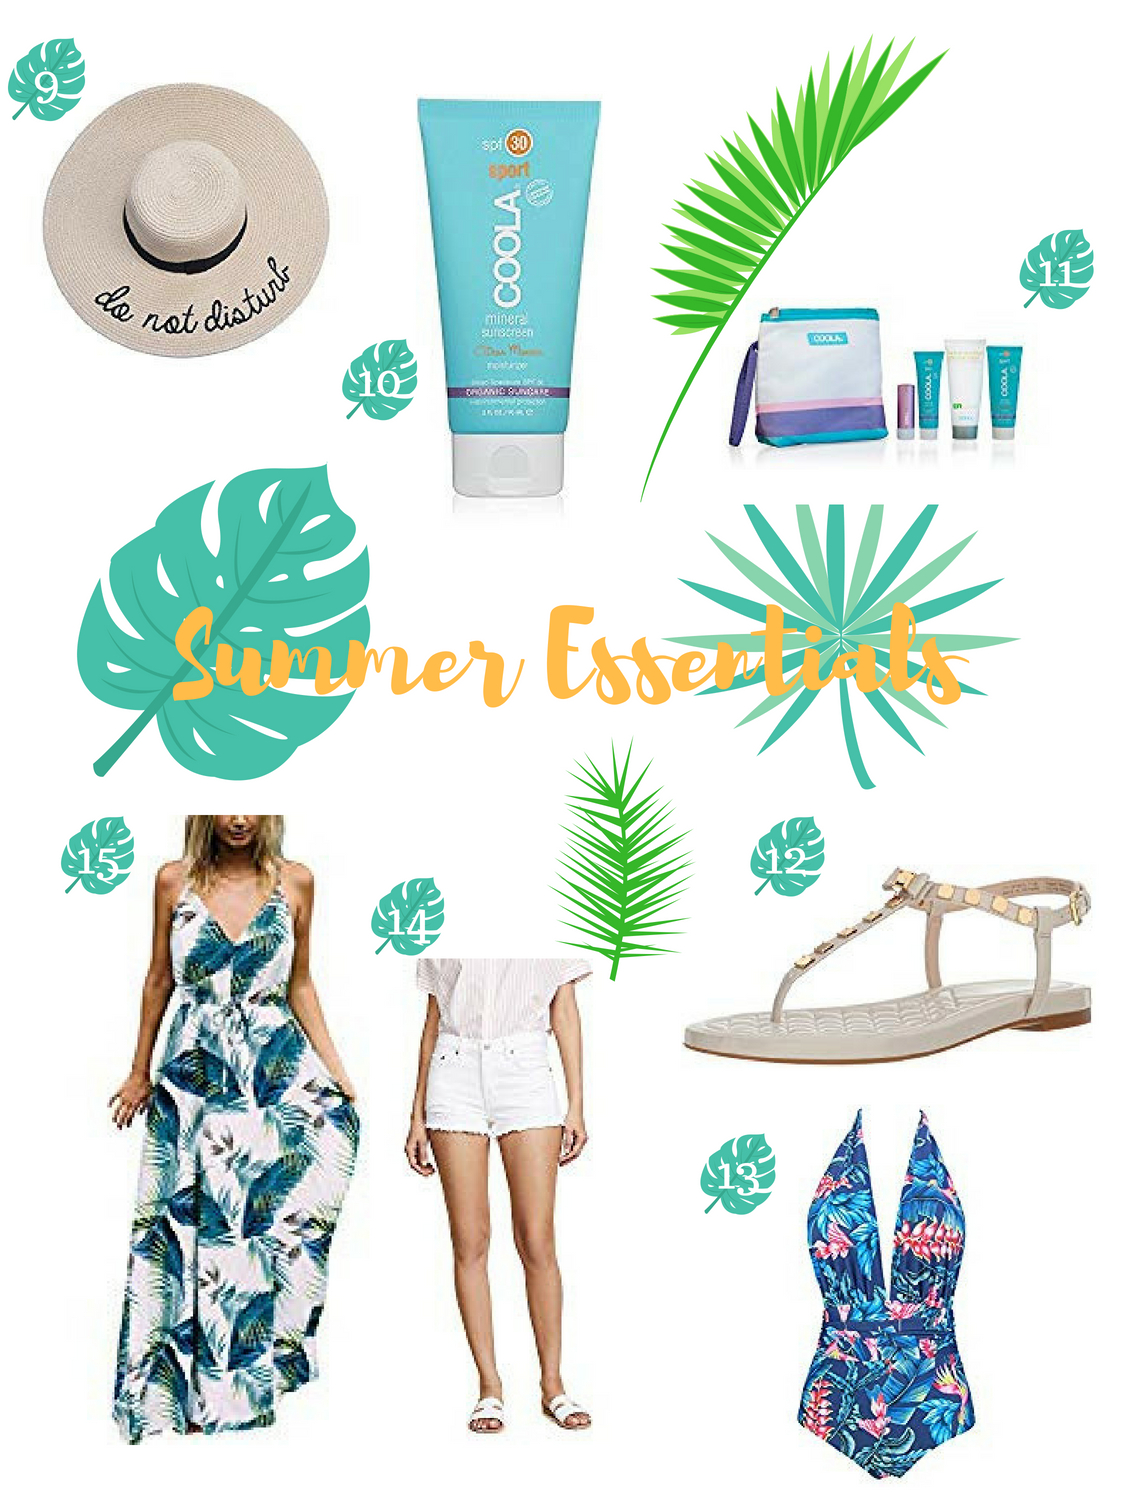 Summers Essentials - Beach and Holiday Style Post